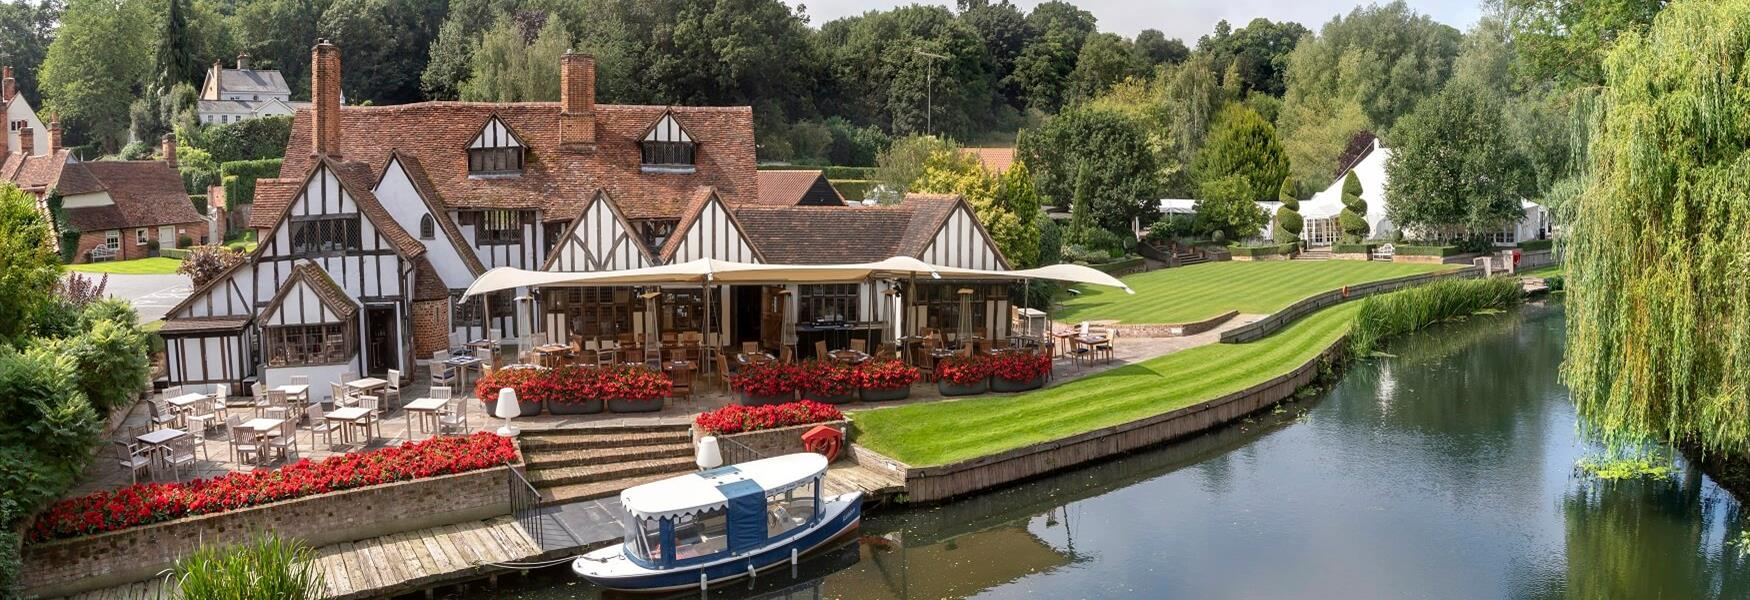 Le Talbooth Restaurant on the River Stour near Dedham